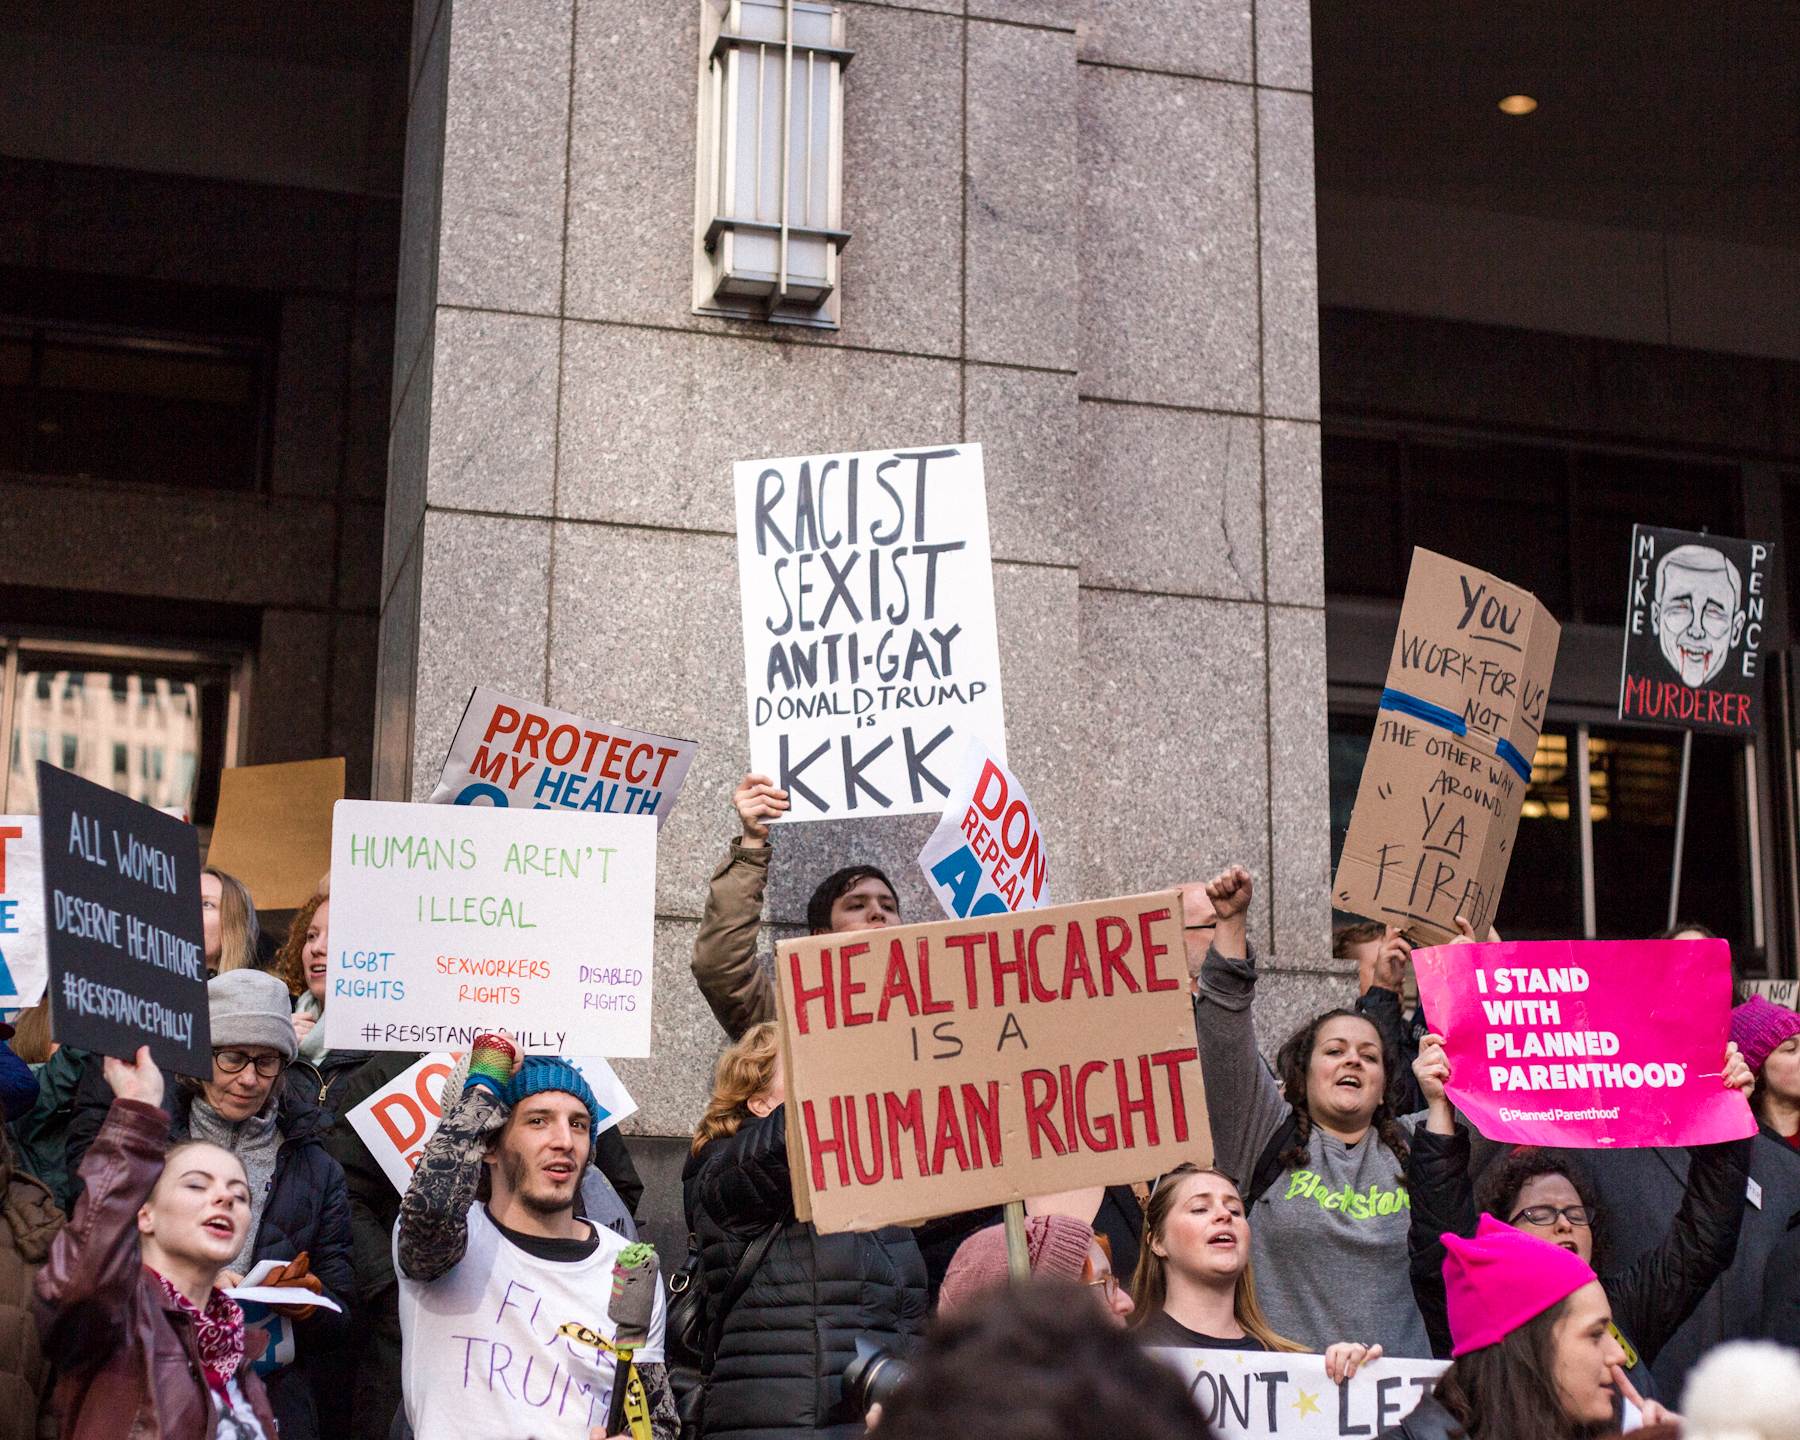 Philly protests the Republican Retreat, 1/26/17